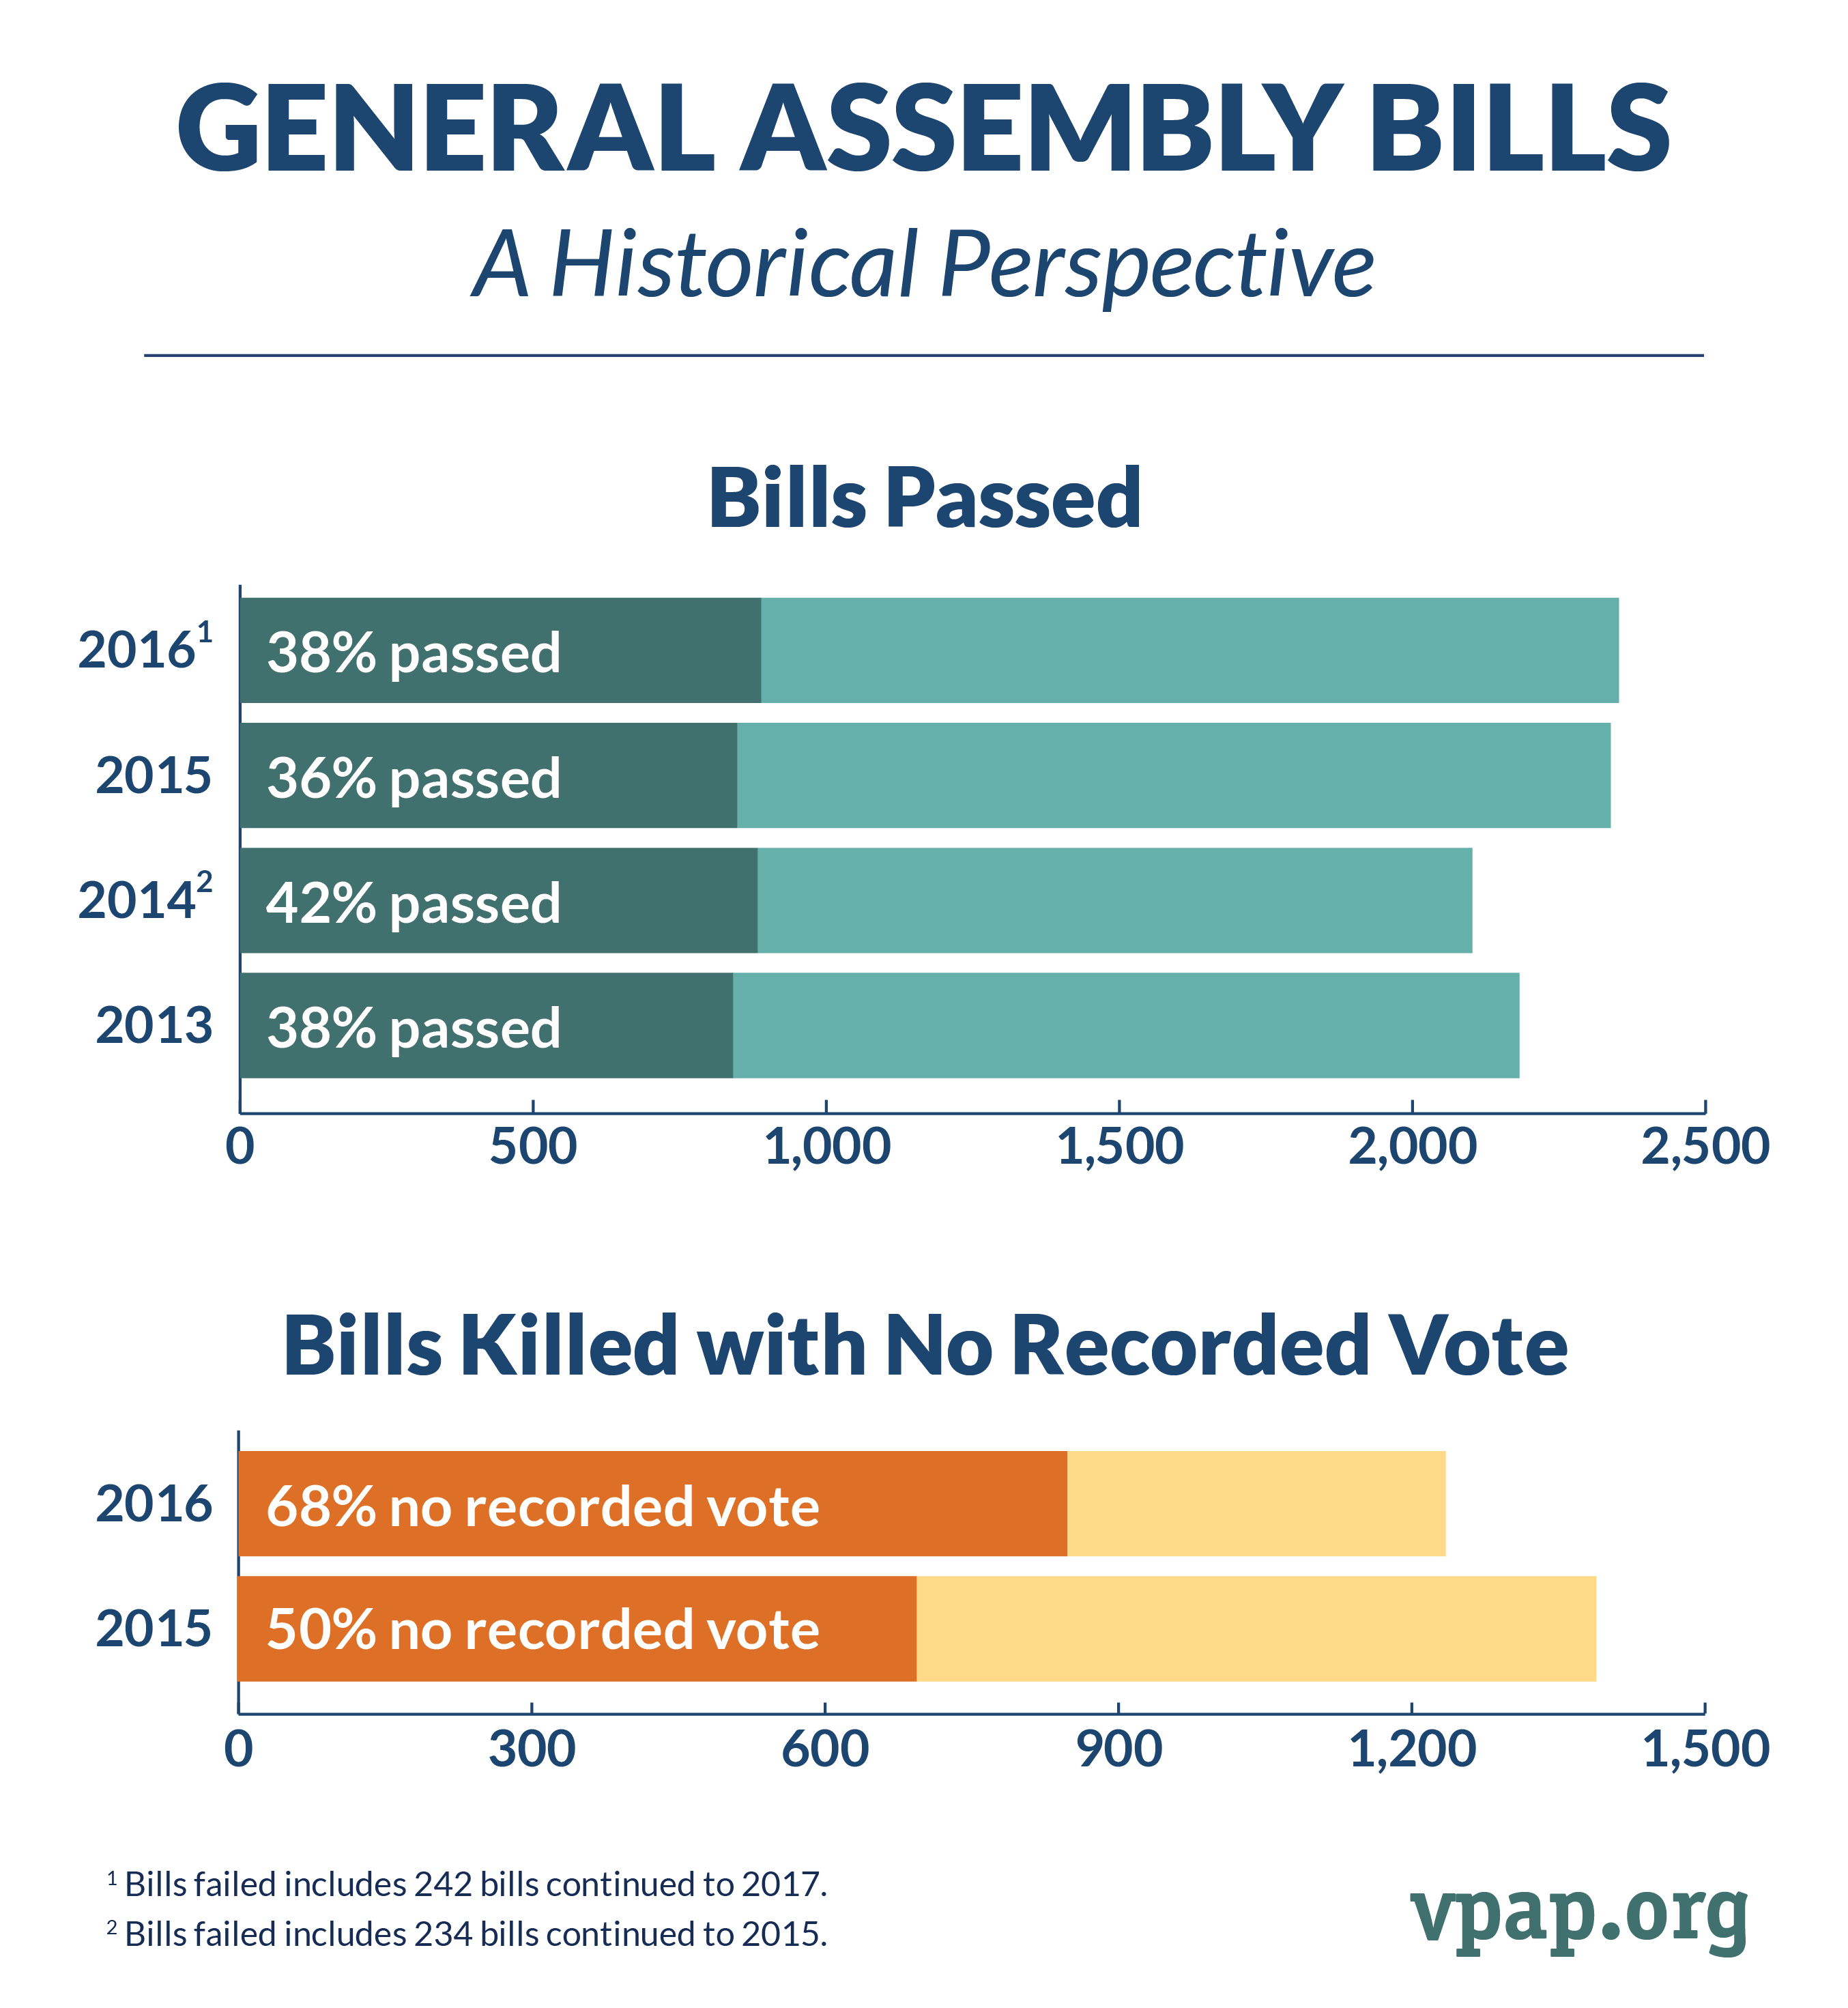 General Assembly Bills: A Historical Perspective